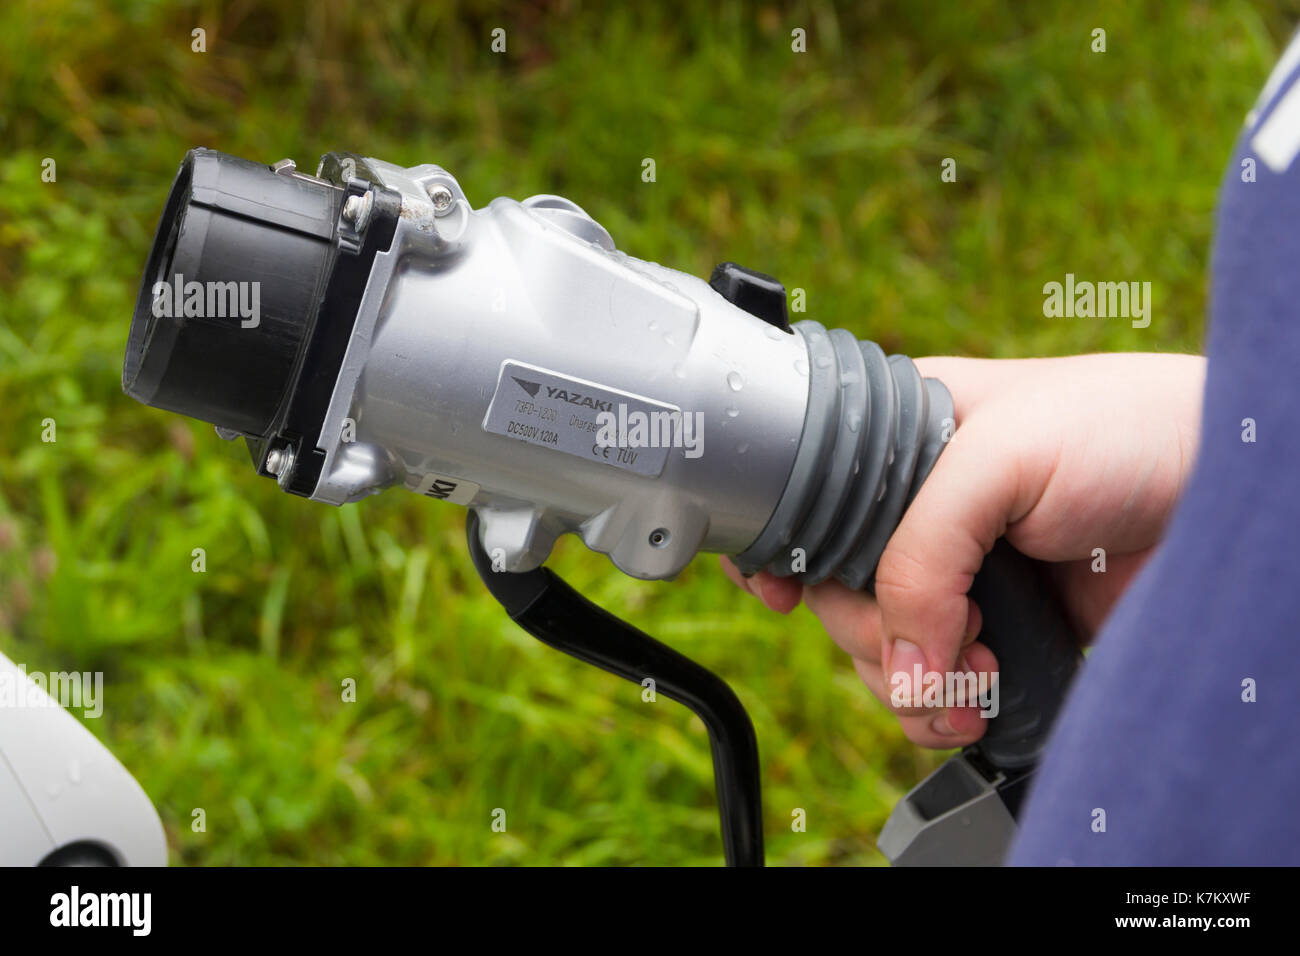 Charge coupler, manufactured by Yazaki, fitted to an Ecotricity electric car recharging point at Tebay services on the M6 in Cumbria - Stock Image